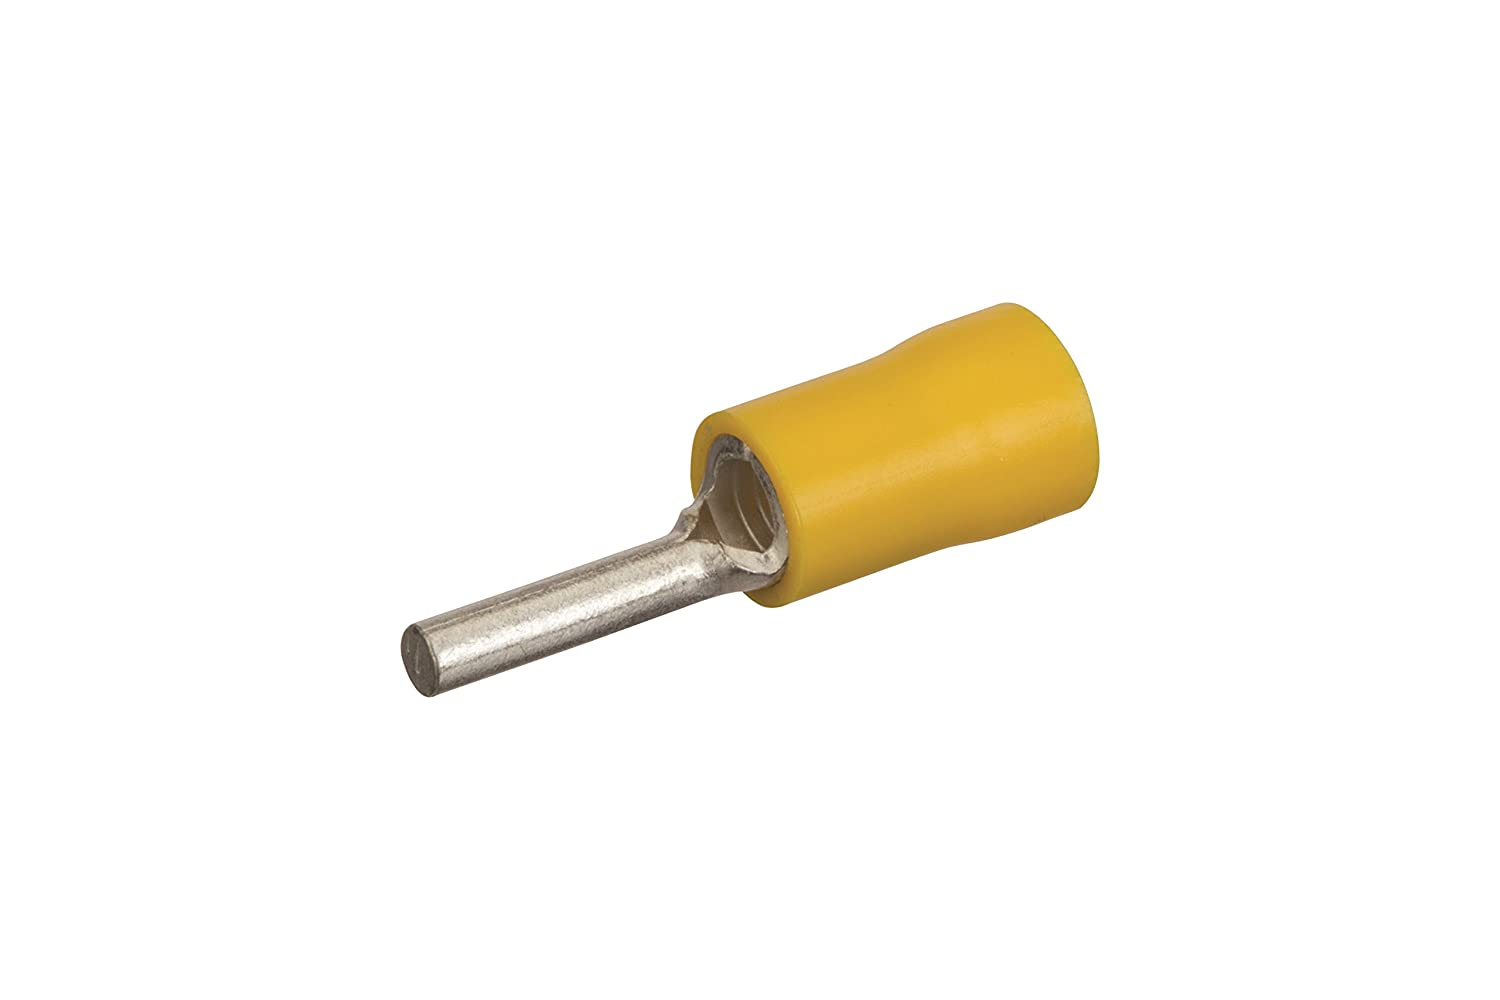 12-10 Wire Size Vinyl Insulated Pin Terminal